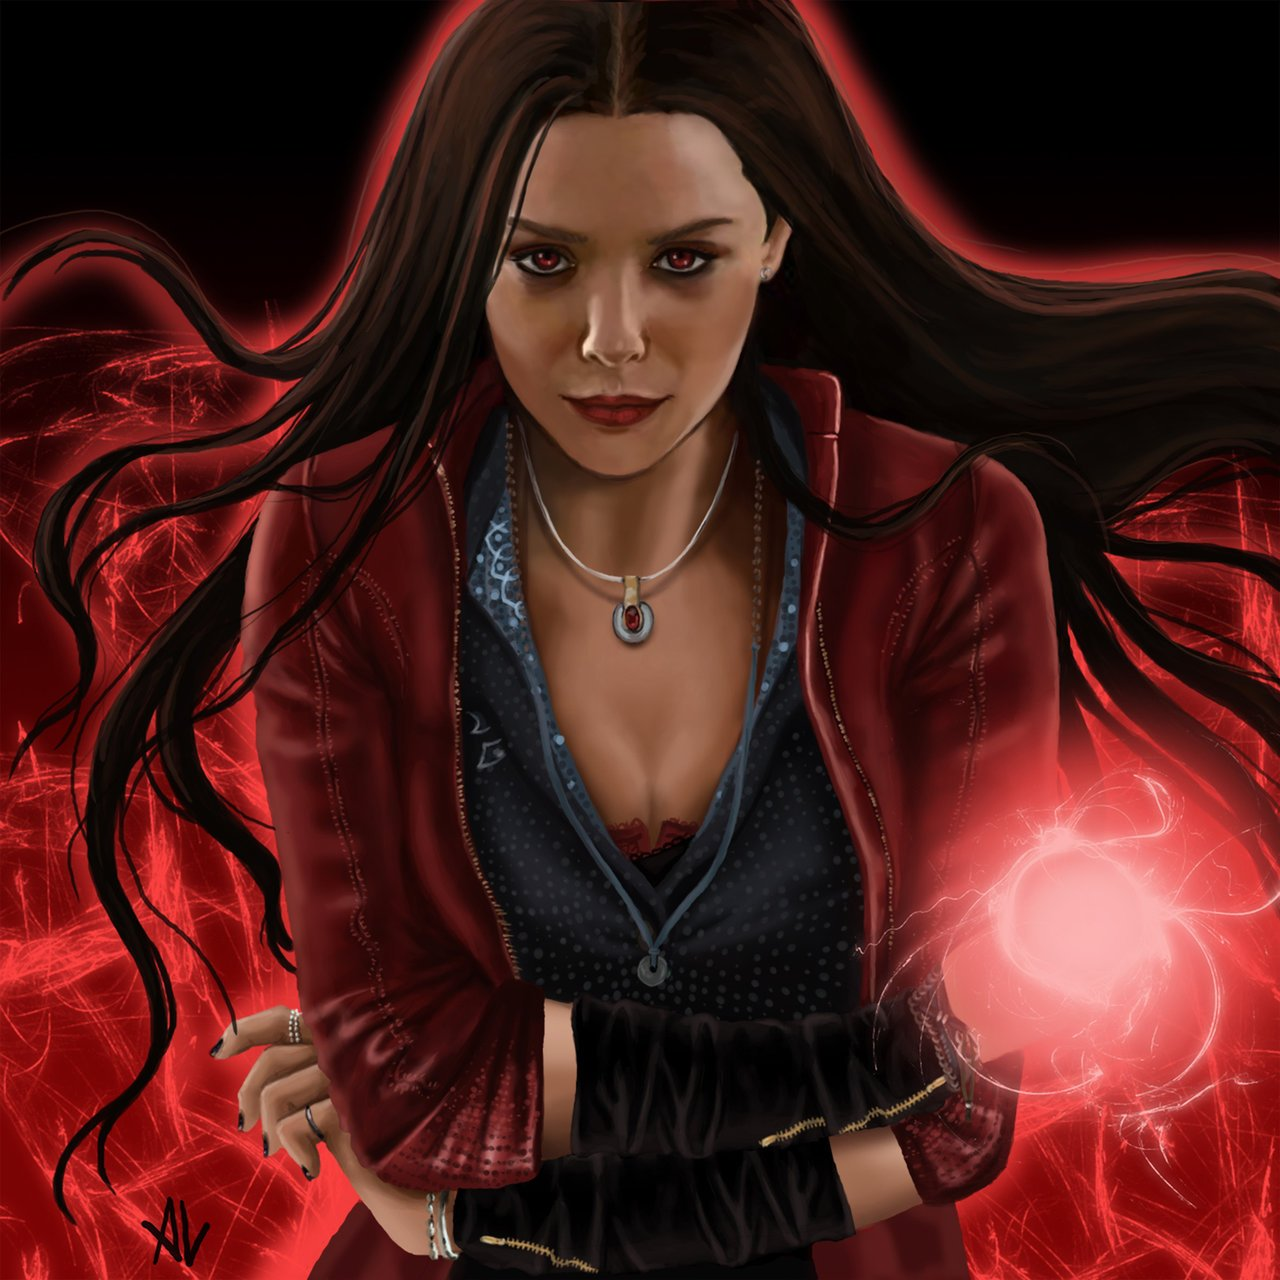 Scarlet Witch Hd Wallpaper On Wallpaperget Com